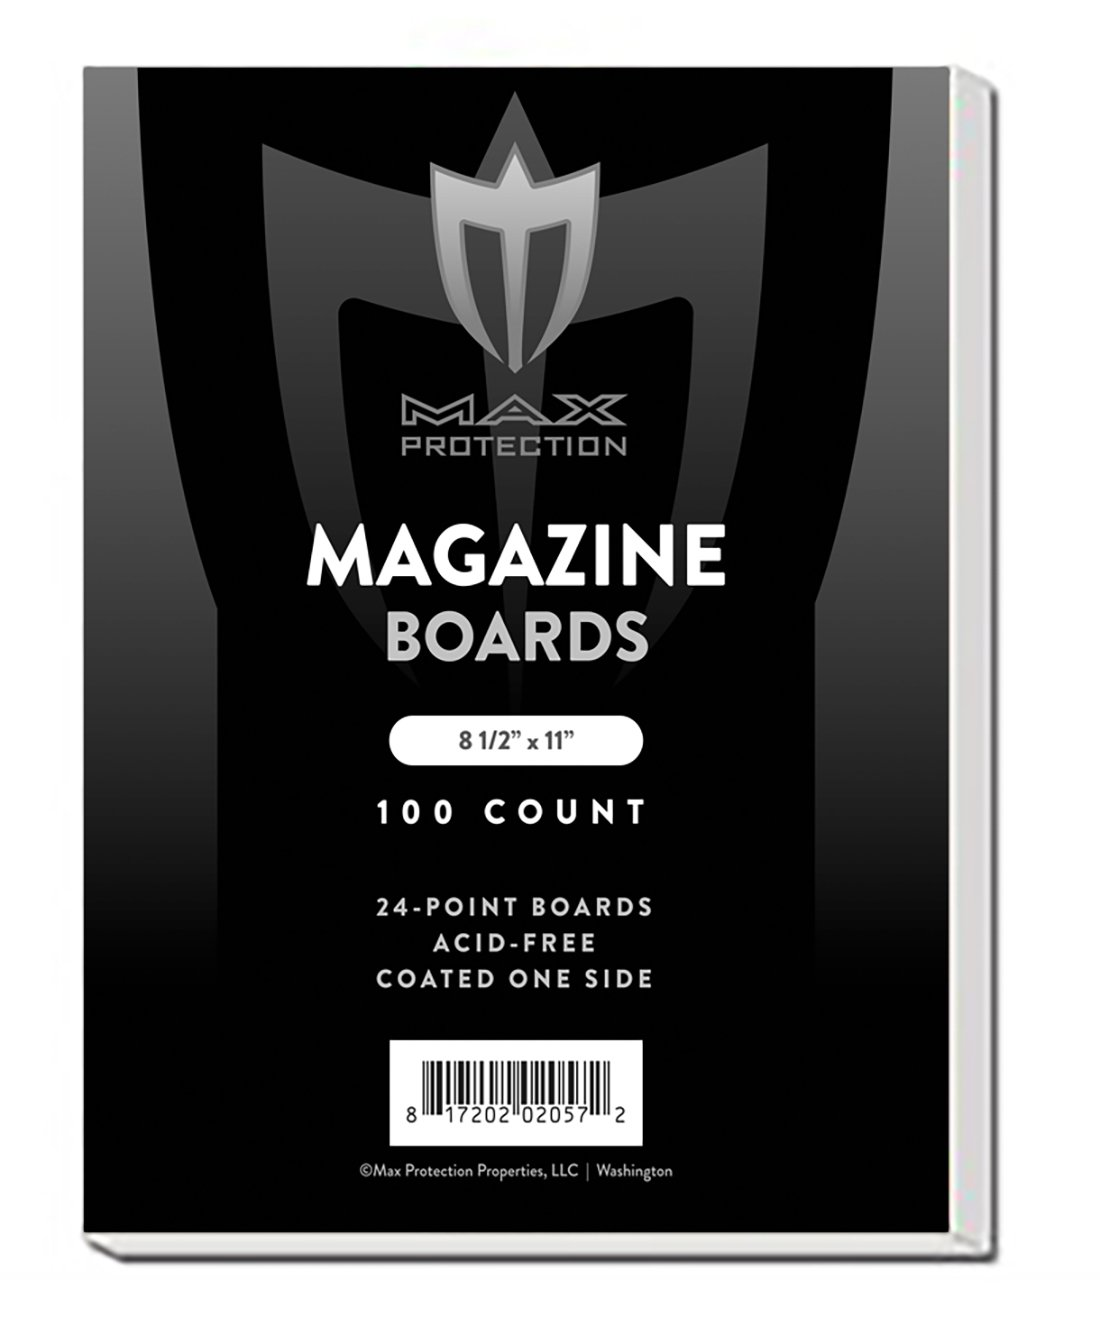 1000 MAGAZINE Size White Comic Backing Boards by Max Pro (8.5'' x 11'') - Protect your MAGAZINES From Bending!